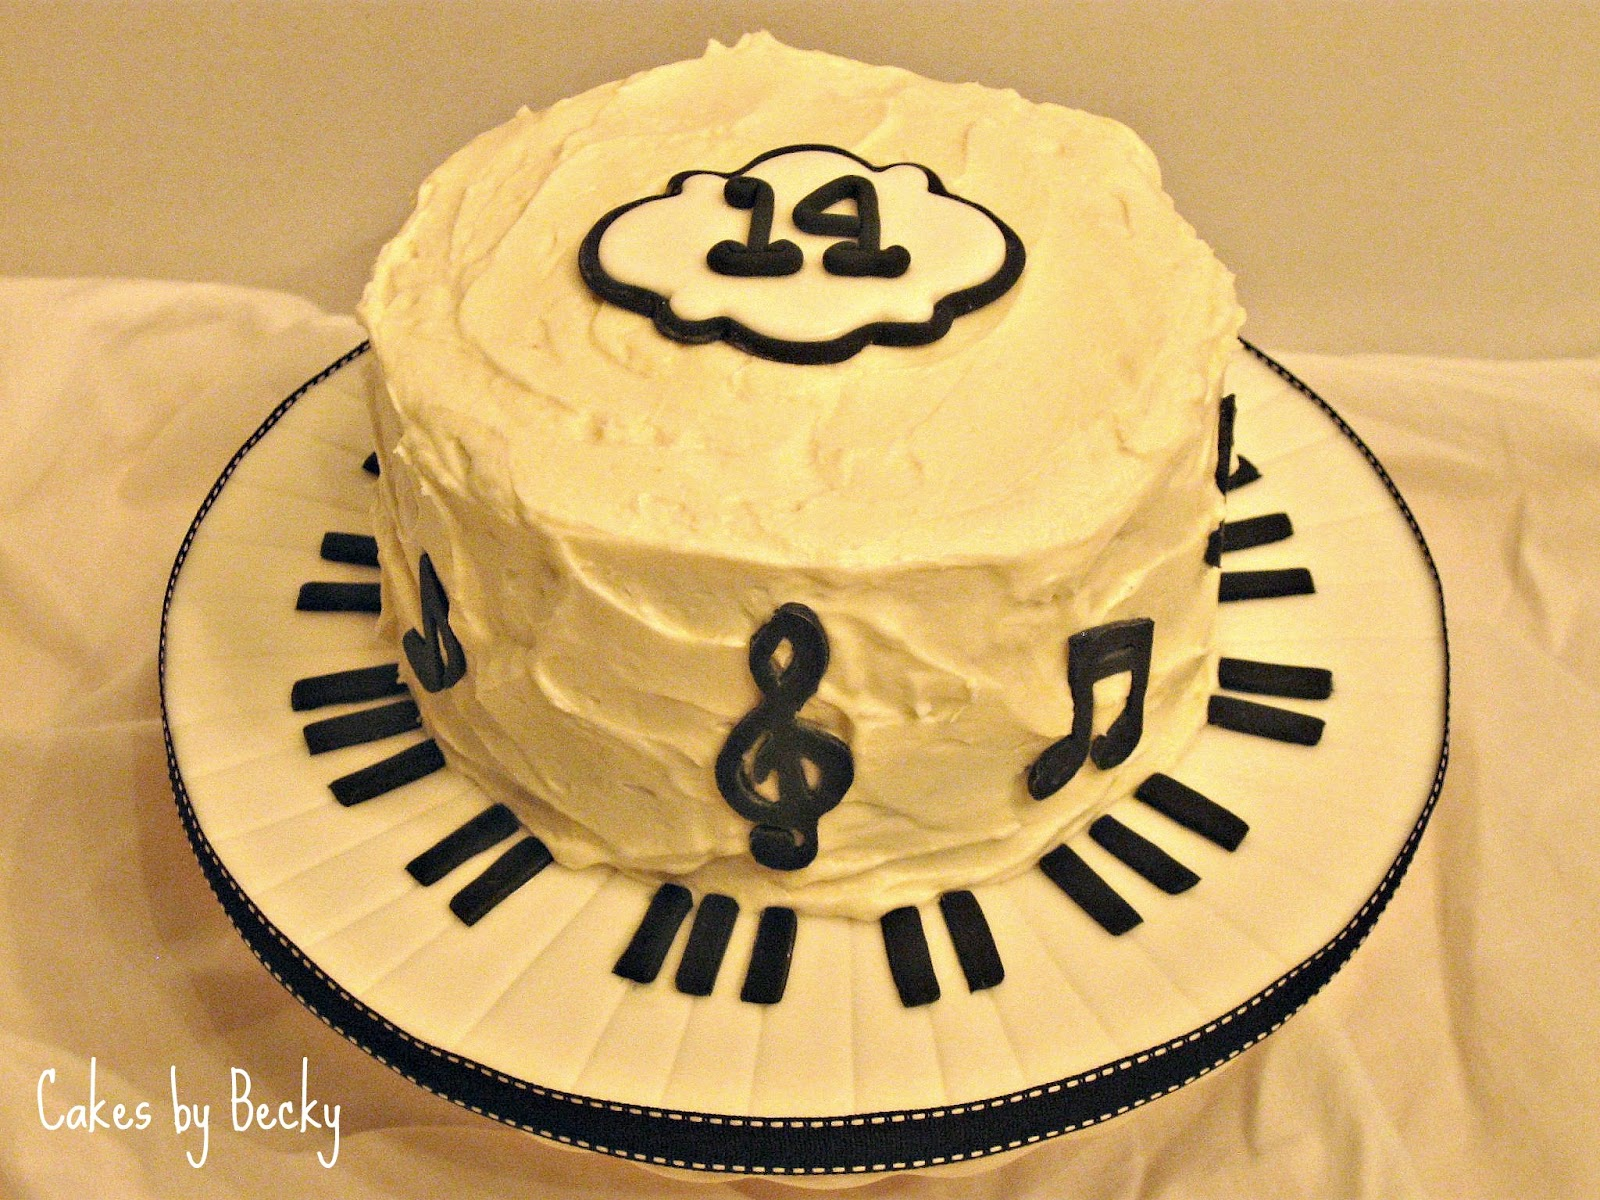 12 Music Bday Cakes Photo Cake Musical 50th Birthday Cake And